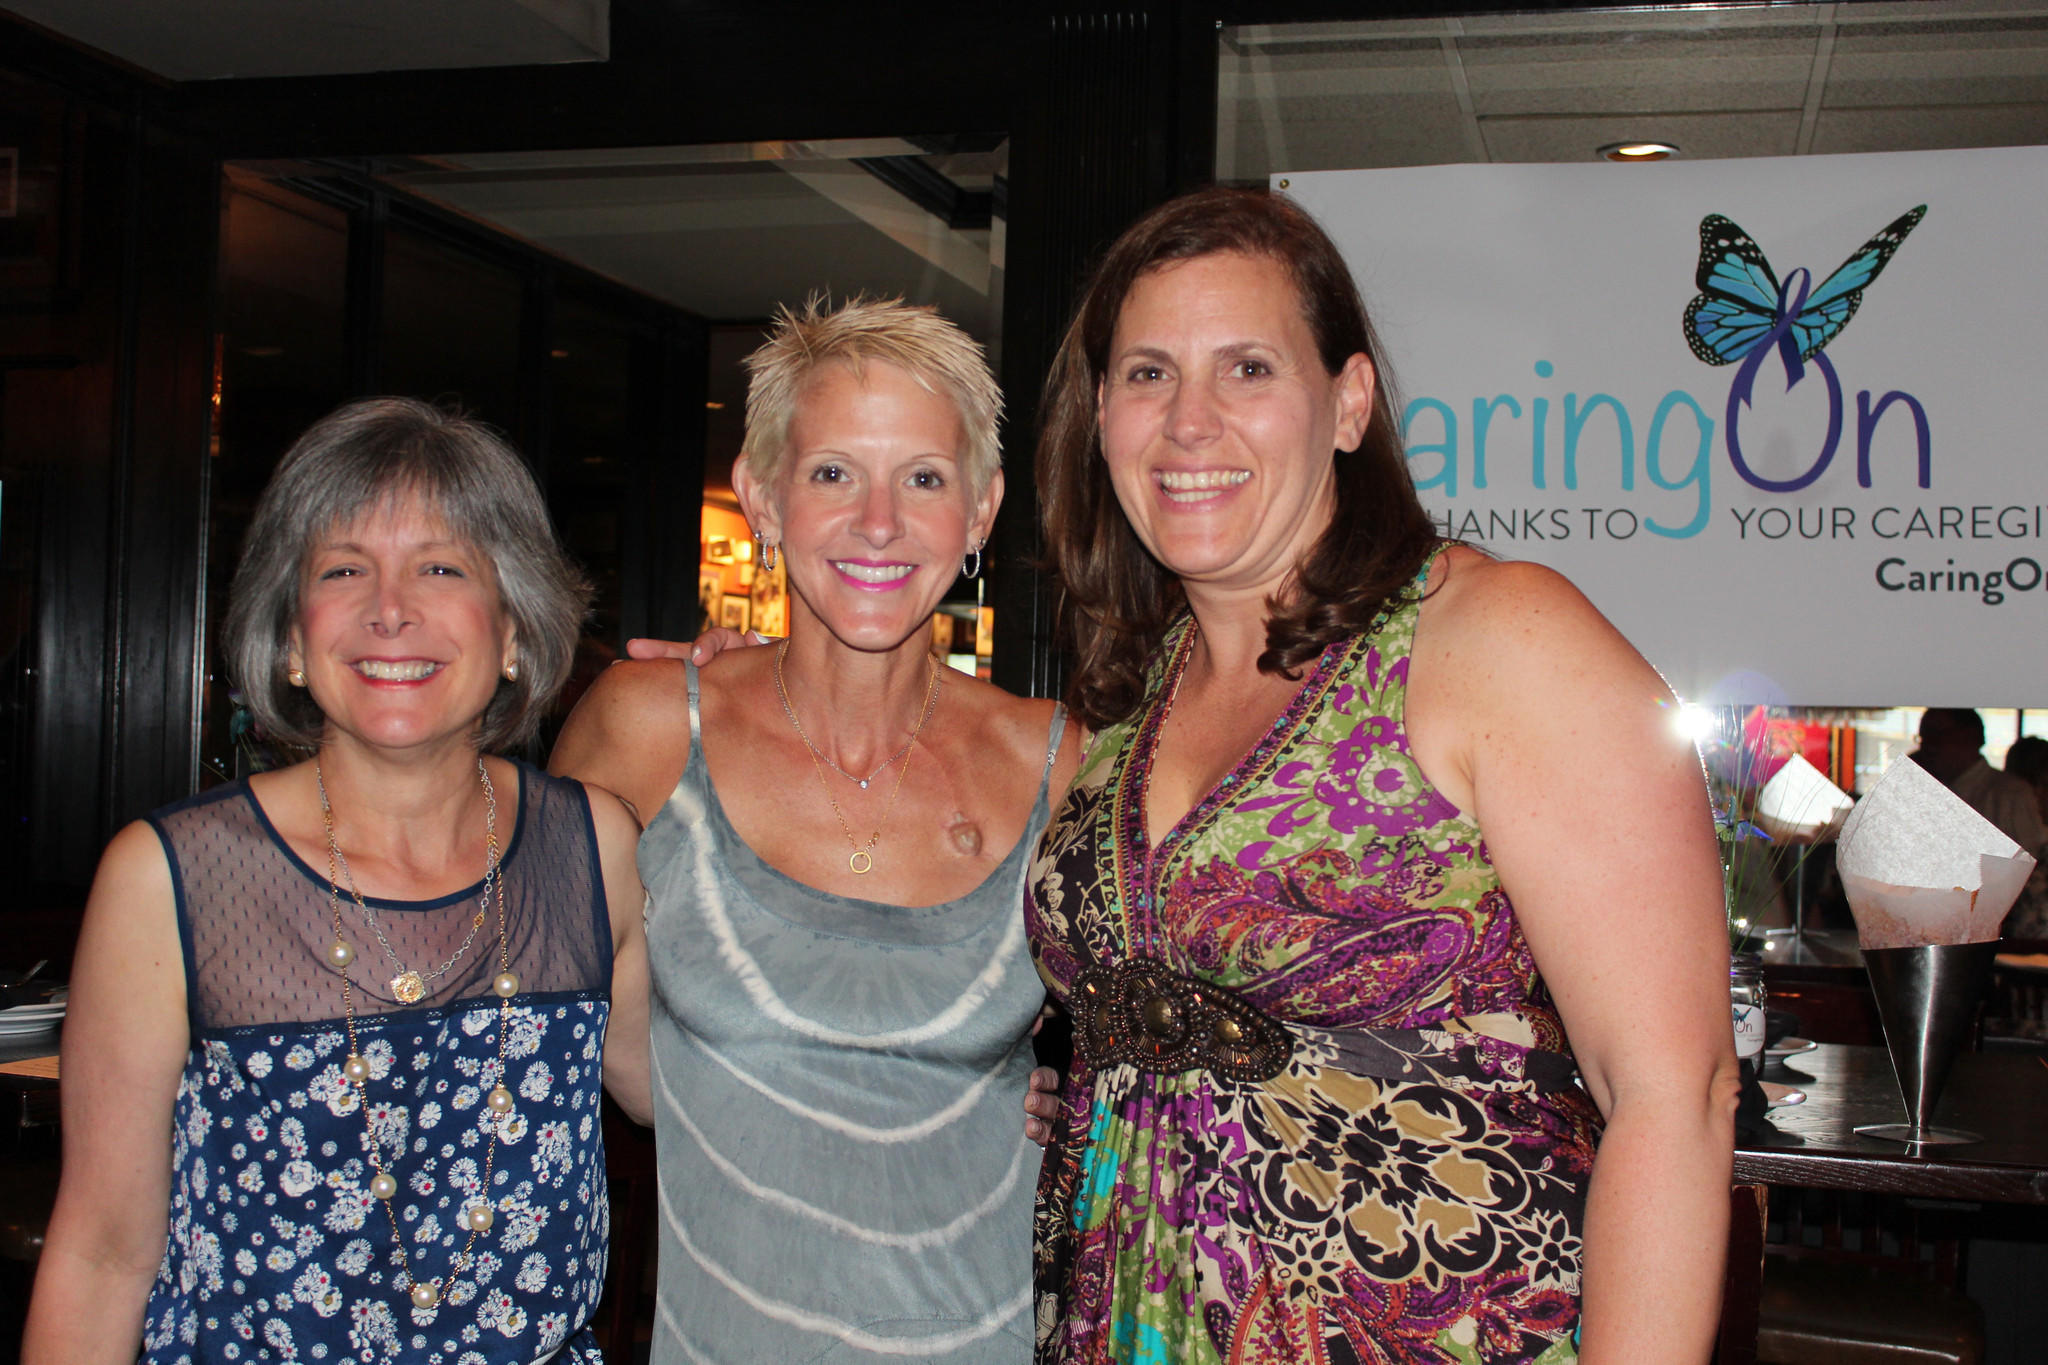 Lee Kappelman, Judy Davanzo and Julie Hettleman of CaringOn.